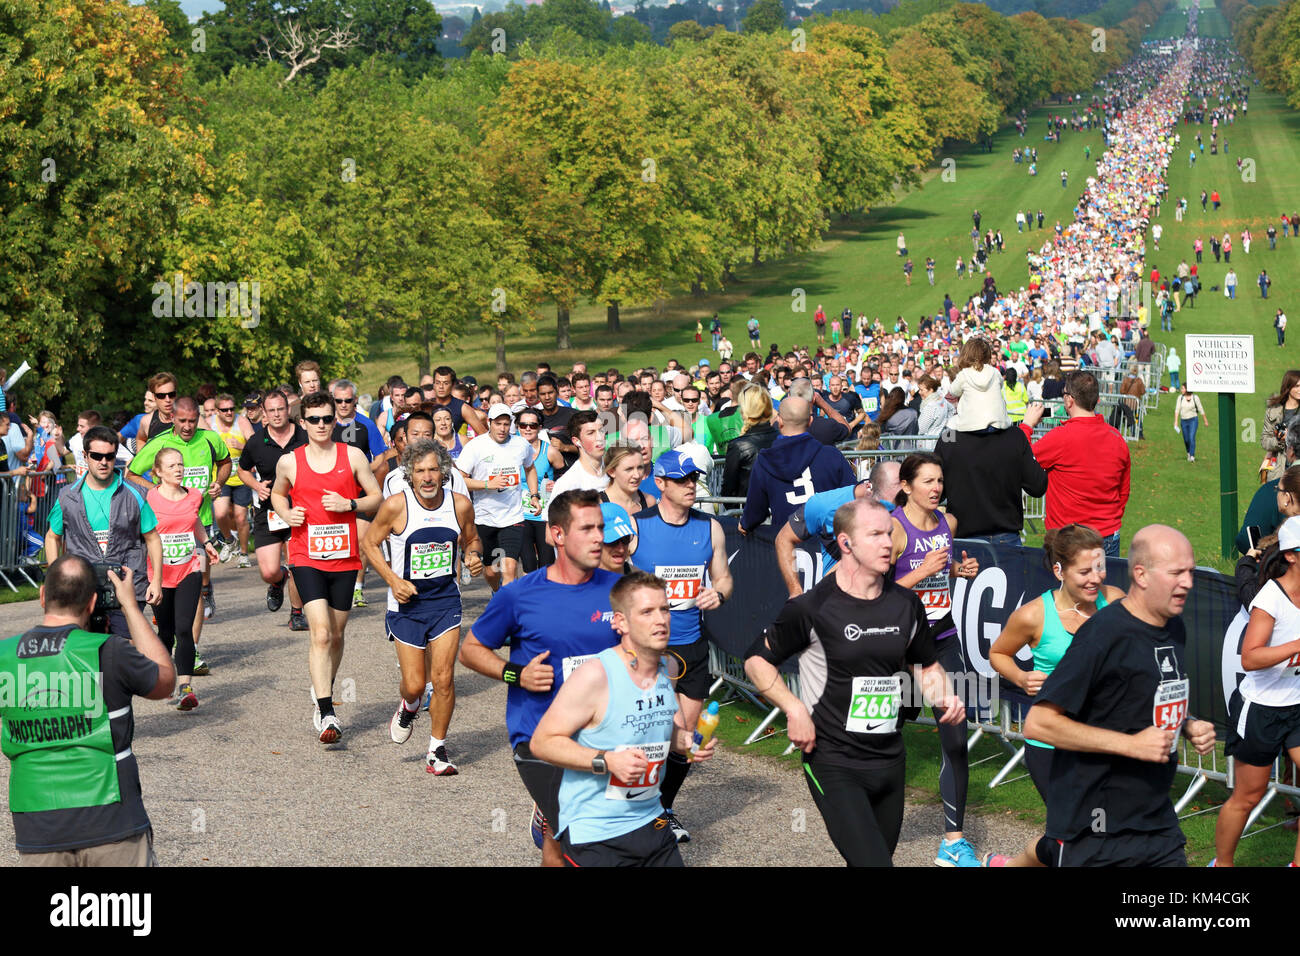 Runners in a Charity Half Marathon on the Long Walk in Windsor Great Park, Berkshire - Stock Image